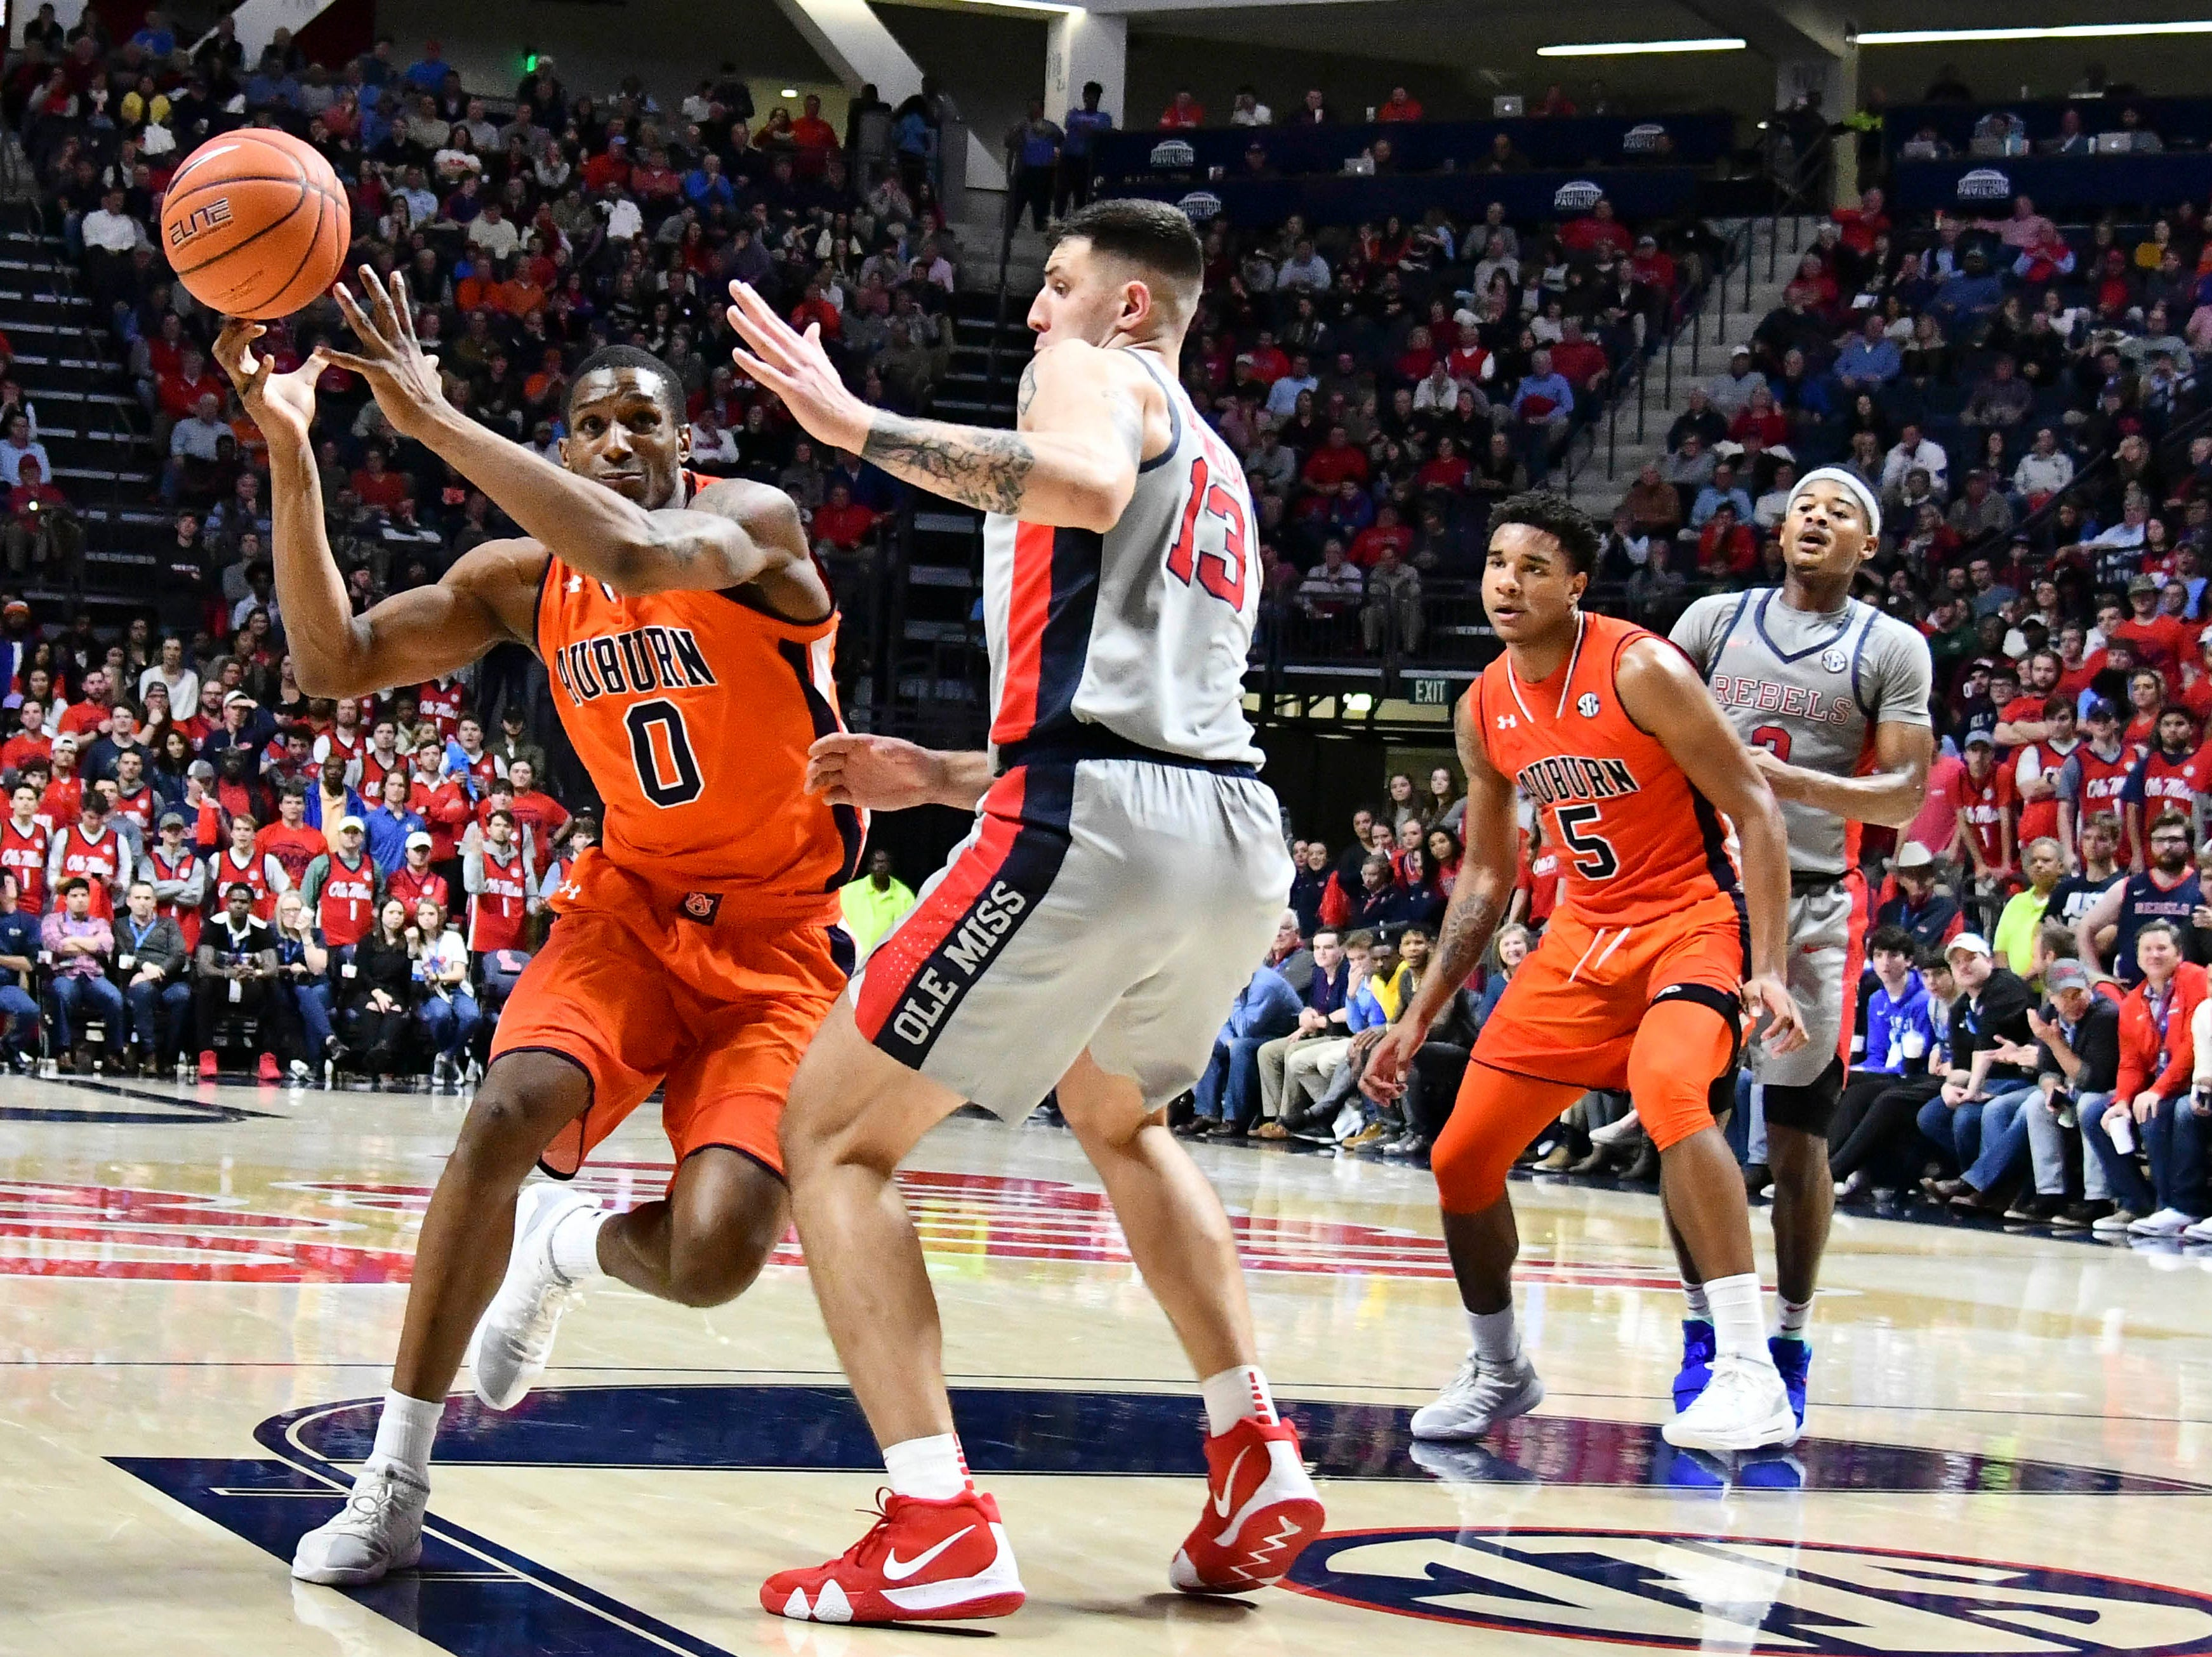 Jan 9, 2019; Oxford, MS, USA; Auburn Tigers forward Horace Spencer (0) loses possession of the ball while guarded by Mississippi Rebels center Dominik Olejniczak (13) during the second half at The Pavilion at Ole Miss. Mandatory Credit: Matt Bush-USA TODAY Sports